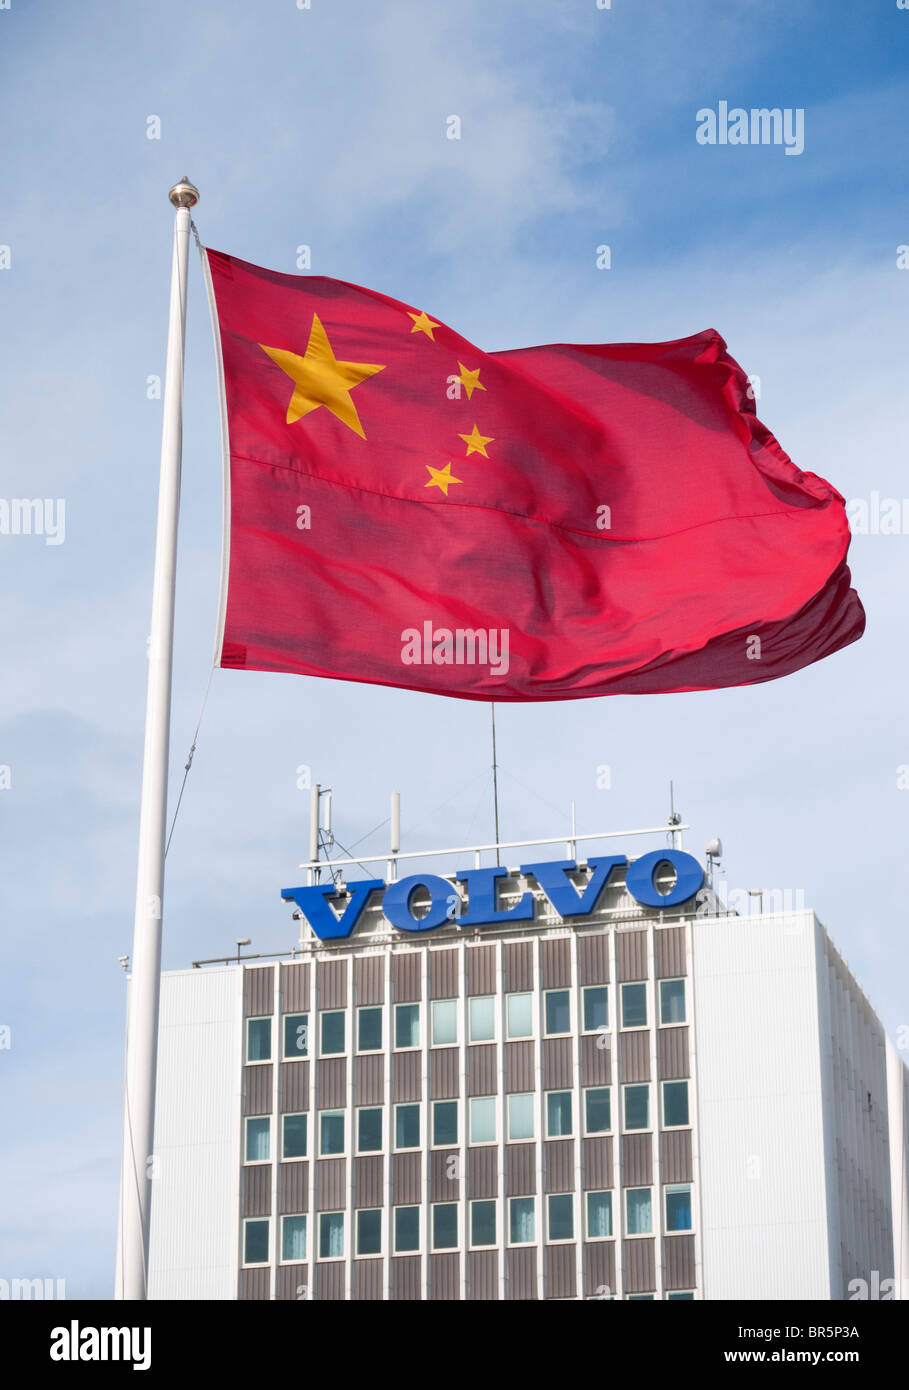 Chinese flag flying over Volvo factory at Gothenburg in Sweden following Chinese takeover of the company 2010 - Stock Image